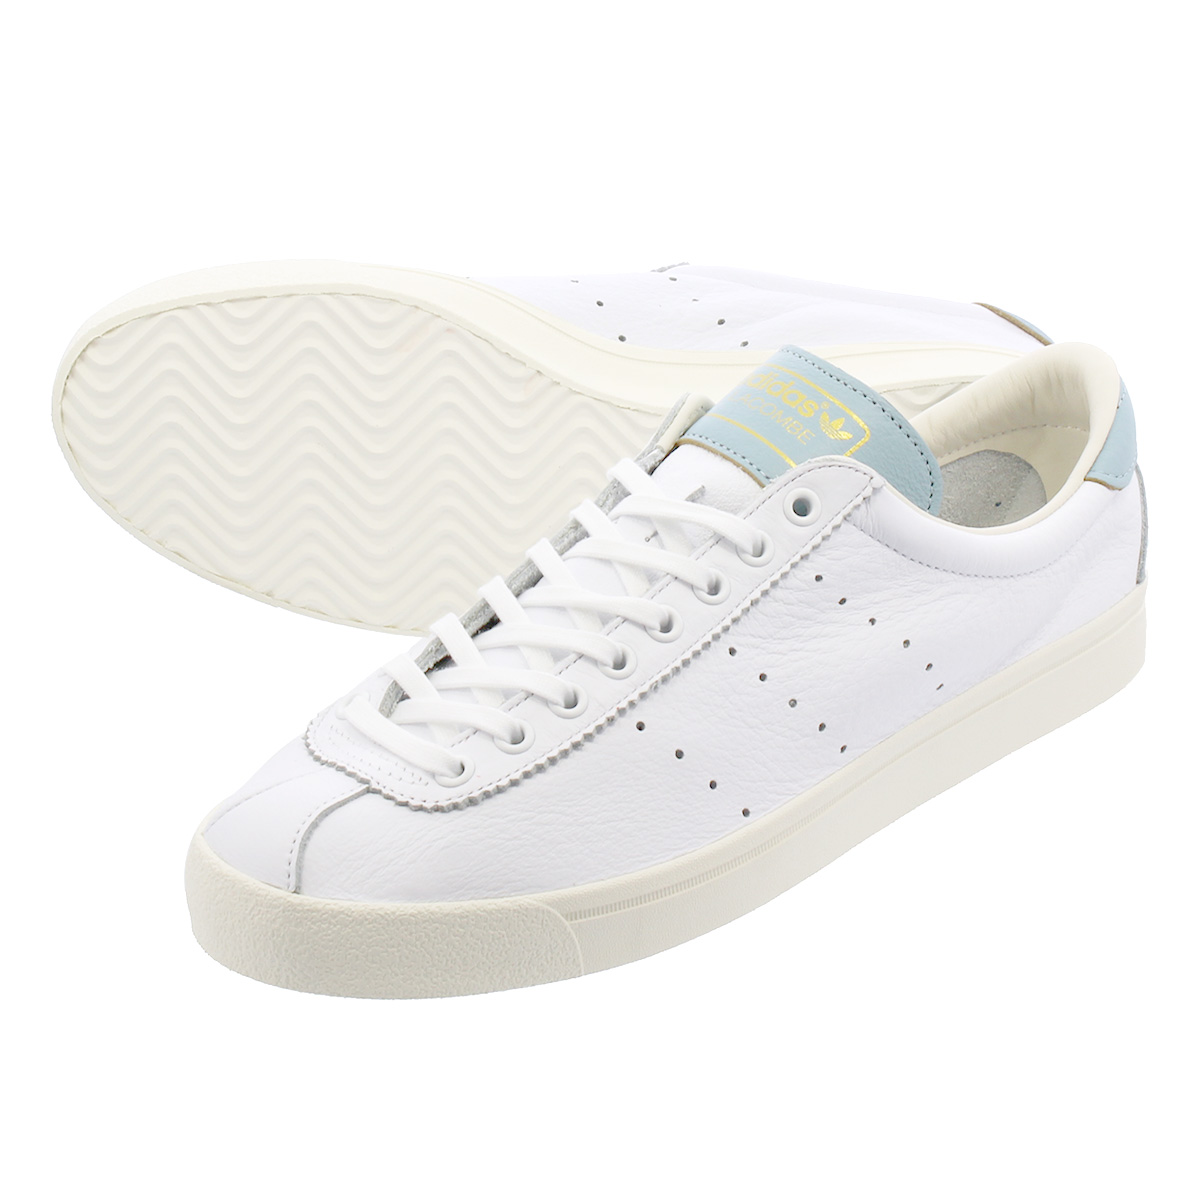 adidas LACOMBE アディダス ラクーム RUNNNIG WHITE/ASH GREY/OFF WHITE bd7609